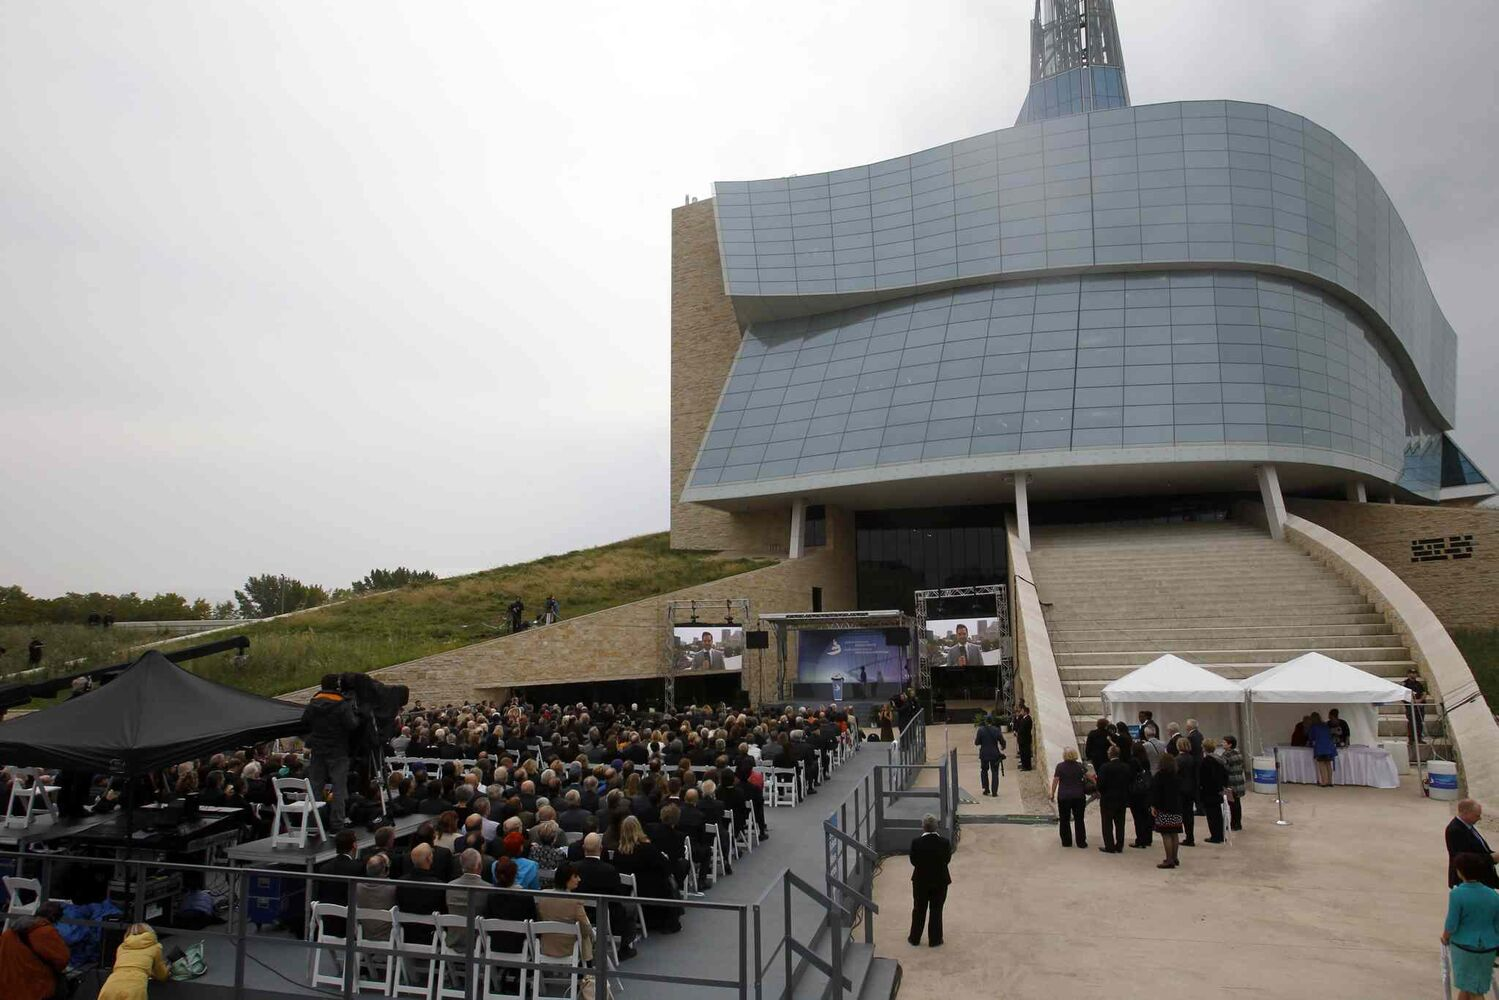 At the Canadian Museum for Human Rights official opening ceremonies Friday. (WAYNE GLOWACKI / WINNIPEG FREE PRESS)